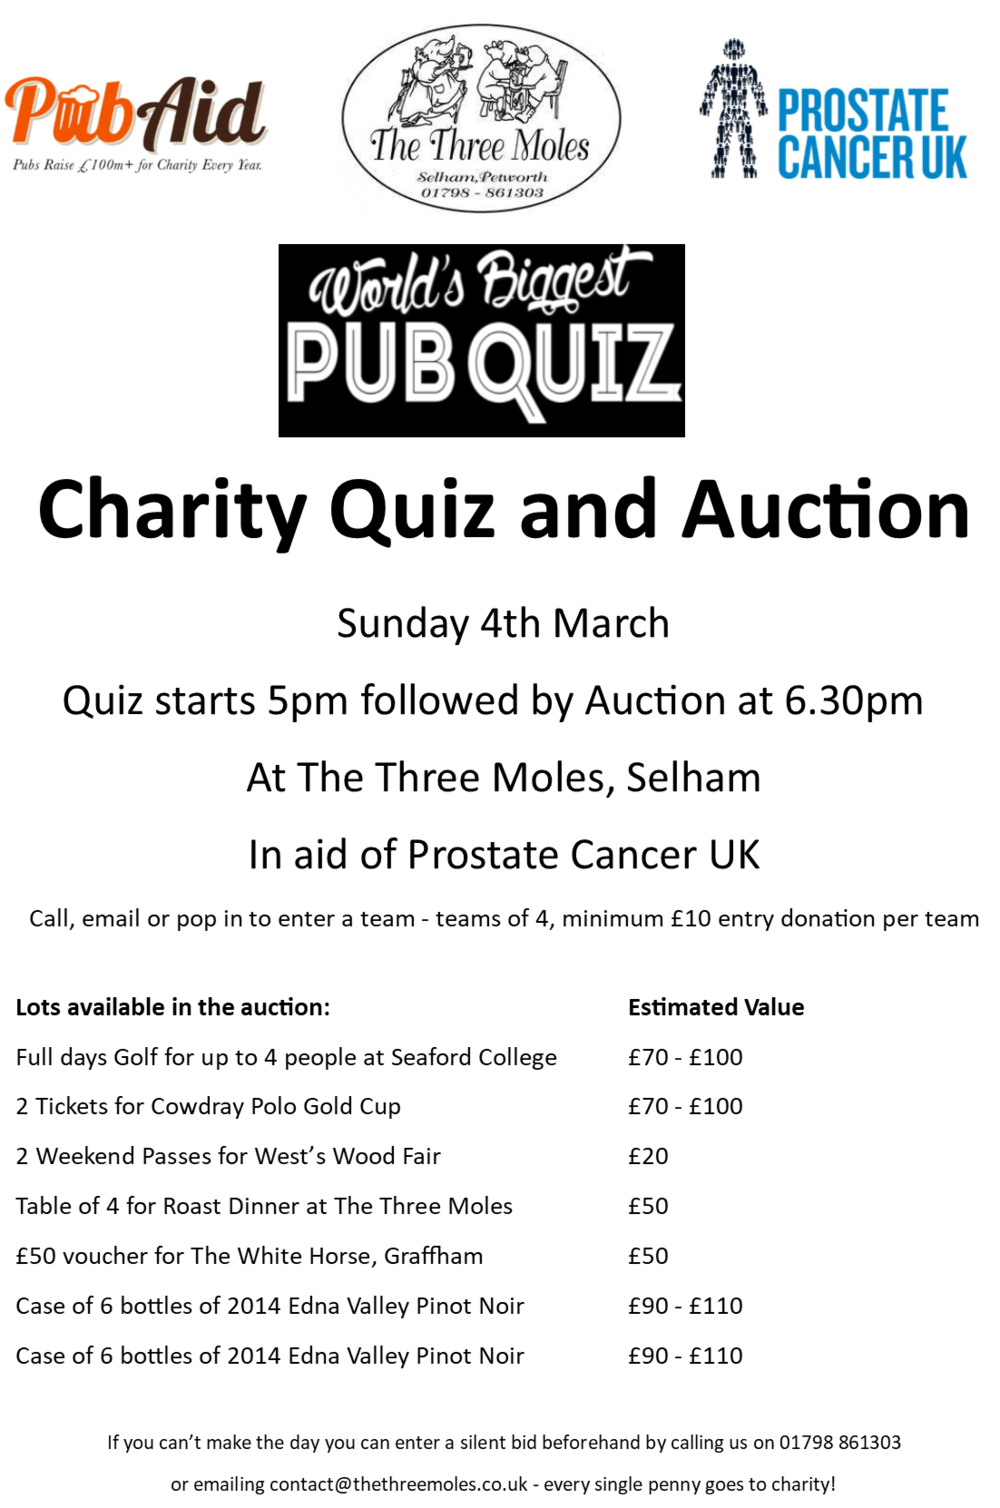 Worlds Biggest Pub Quiz and Auction in aid of Prostate Cancer UK